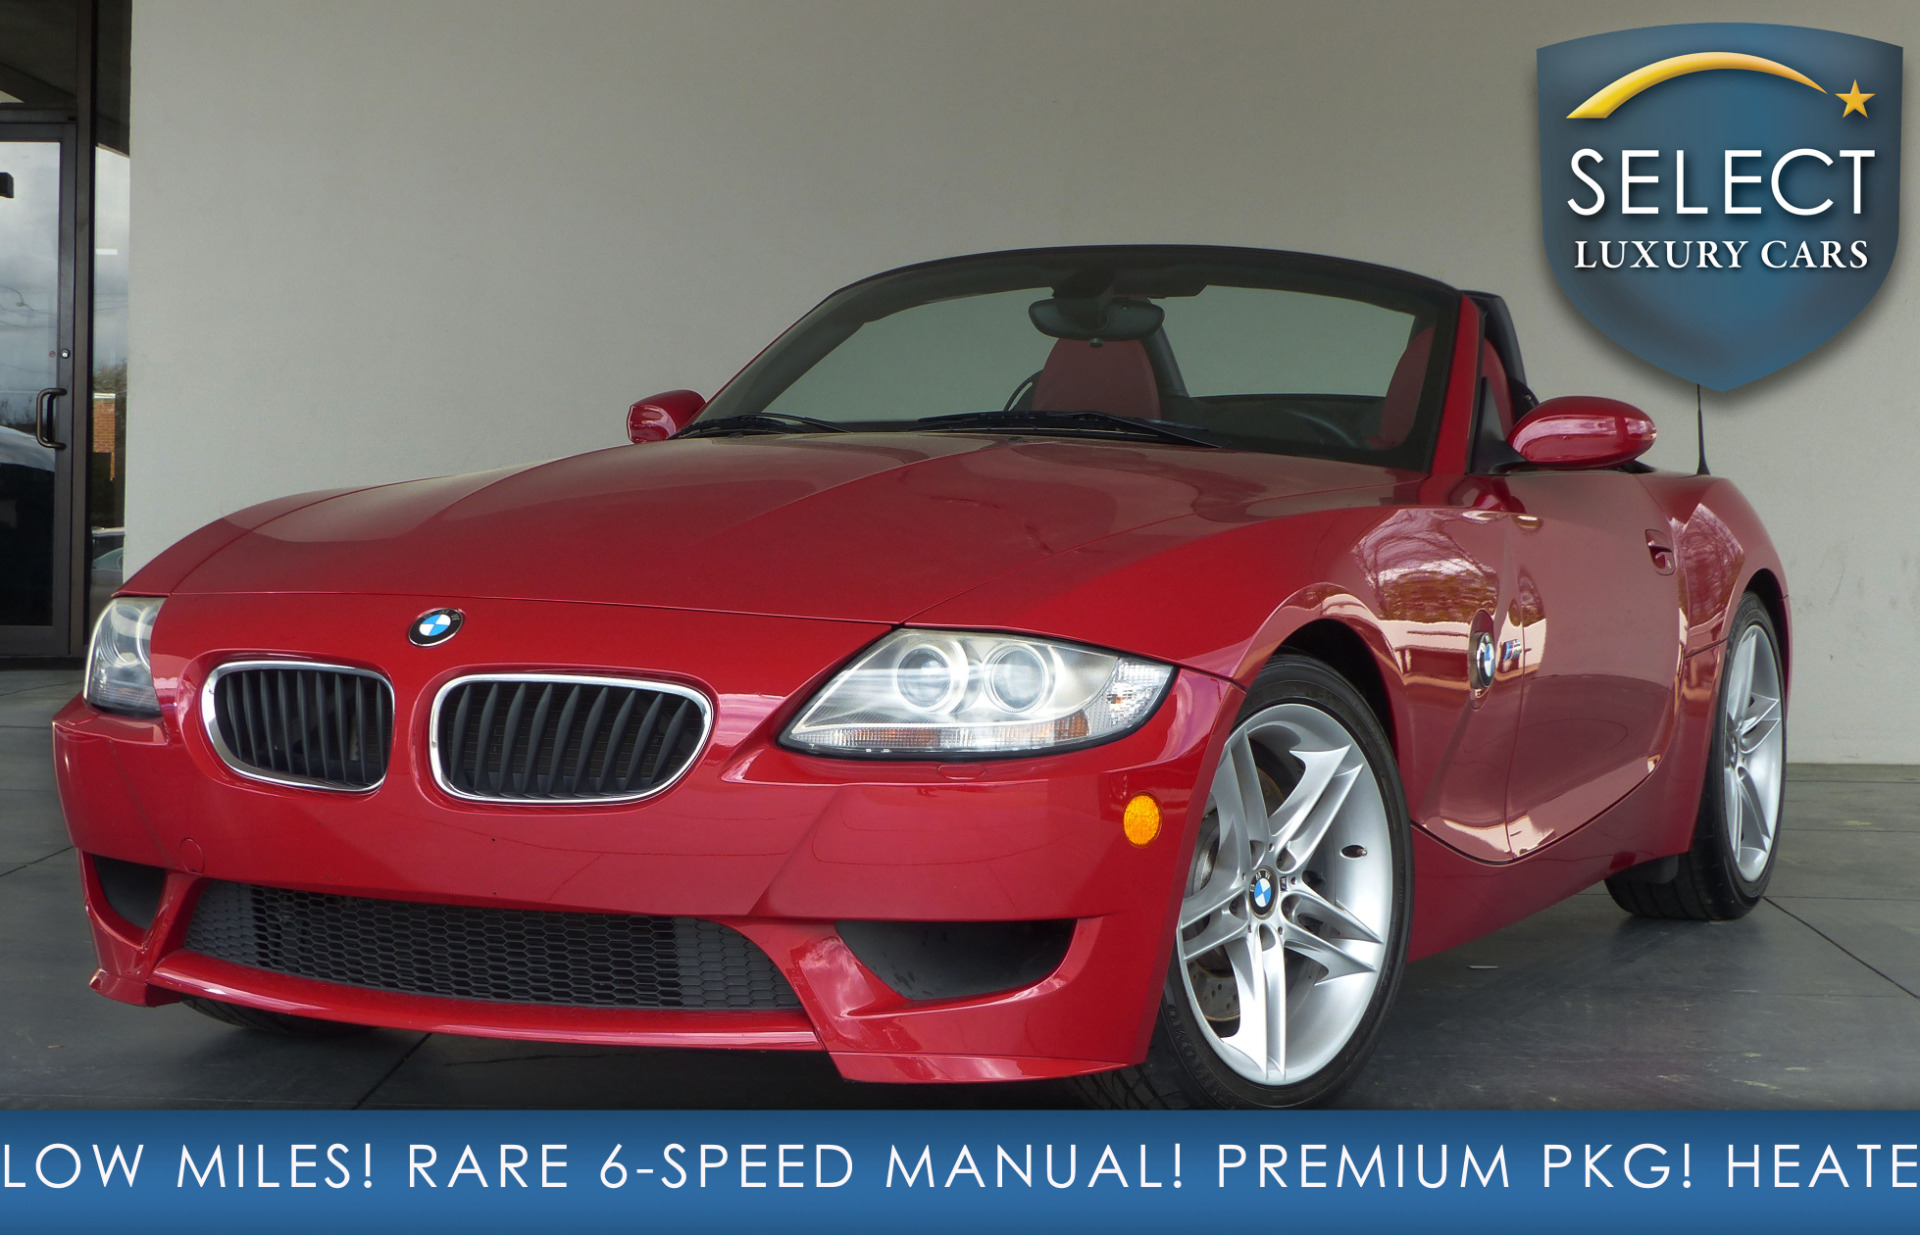 used 2006 bmw z4 m marietta ga rh selectluxury com AASHTO Bridge Inspection Manual Dot Inspection Manual